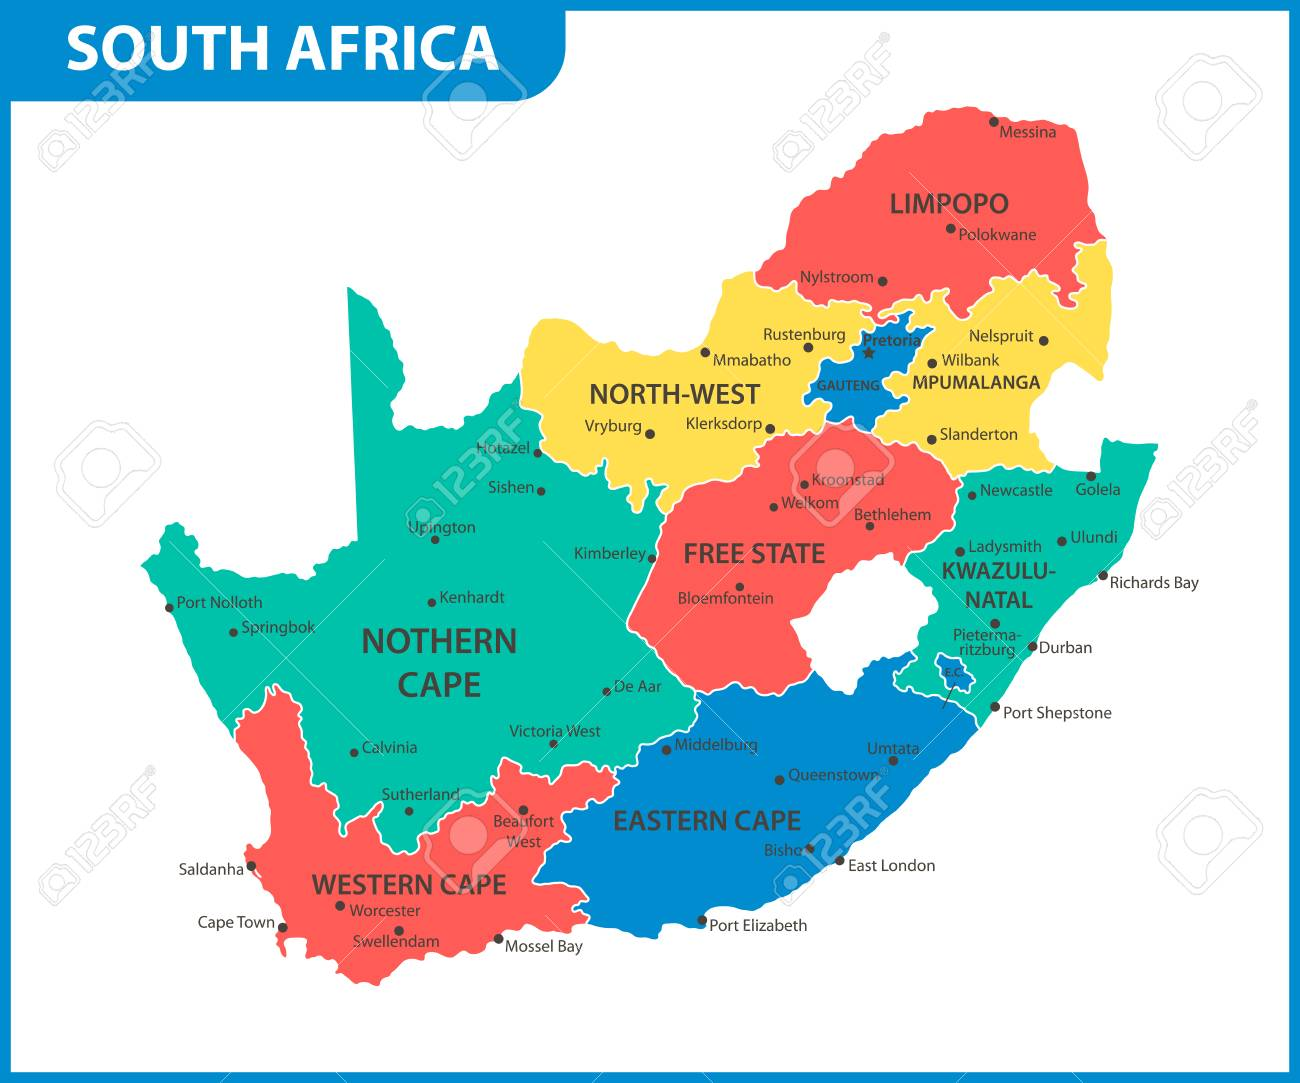 The Detailed Map Of South Africa With Regions Or States And Cities